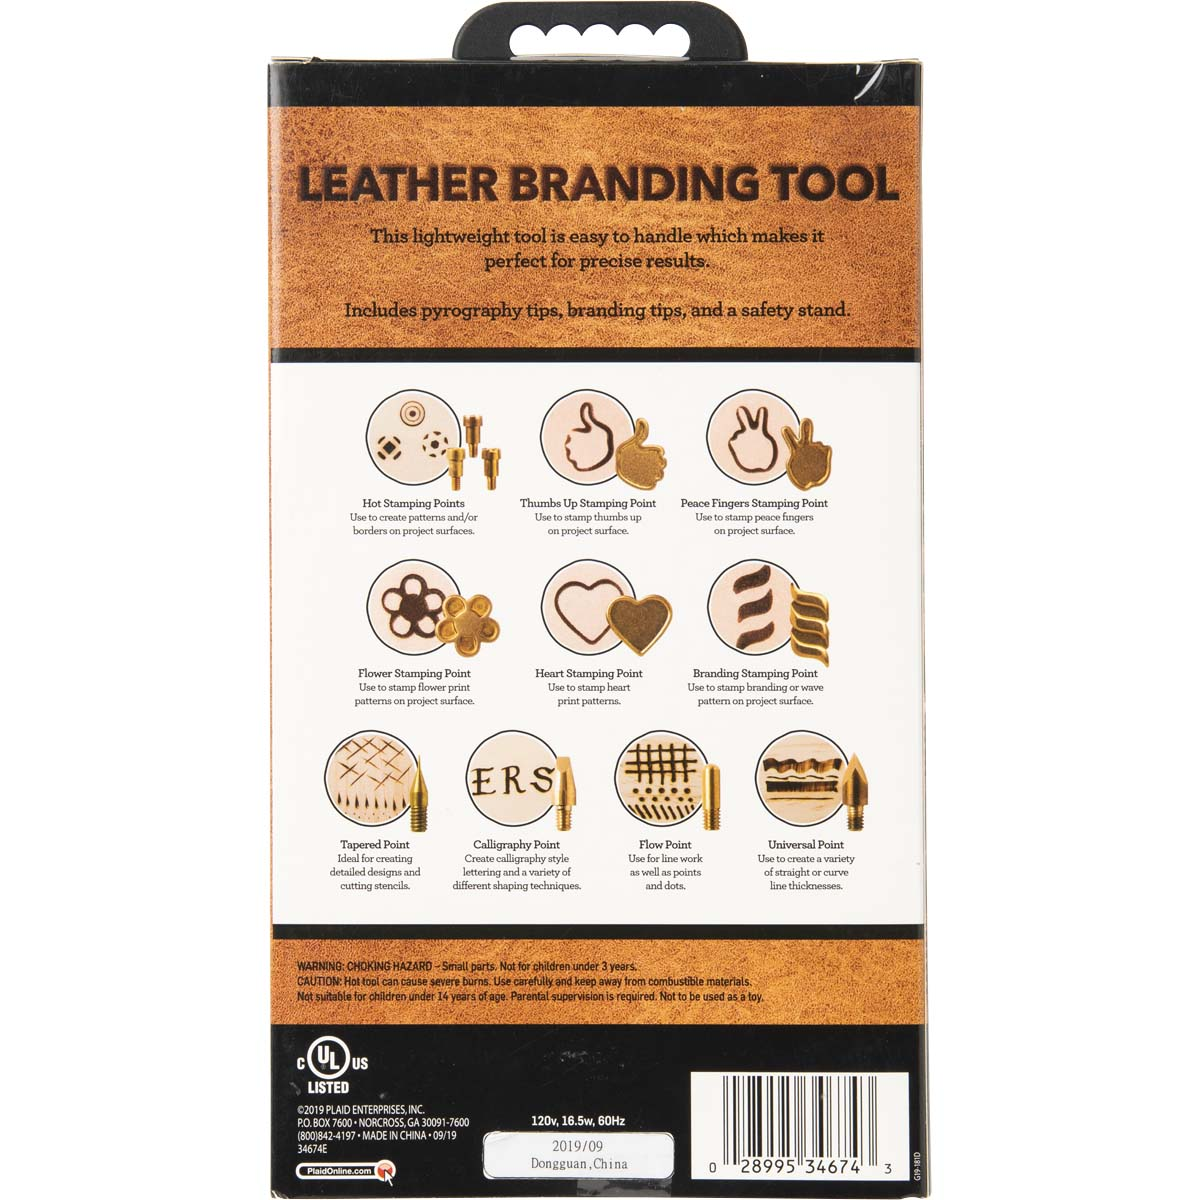 Plaid ® Leather Branding Tool, 15 pc. - 34674E